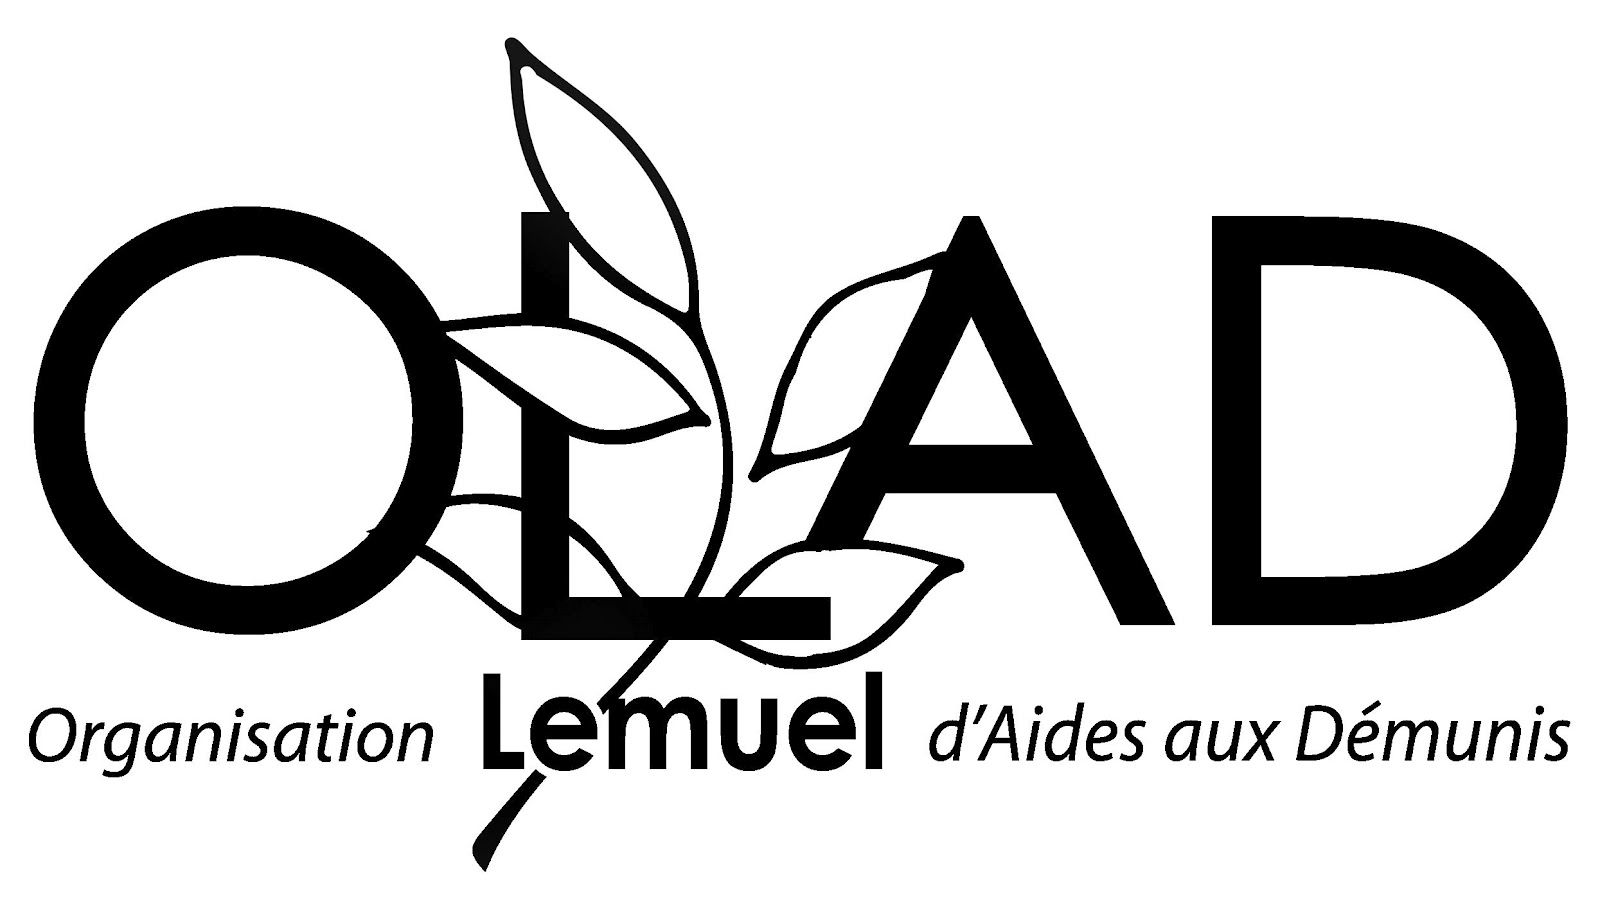 Full OLAD Black and White Logo